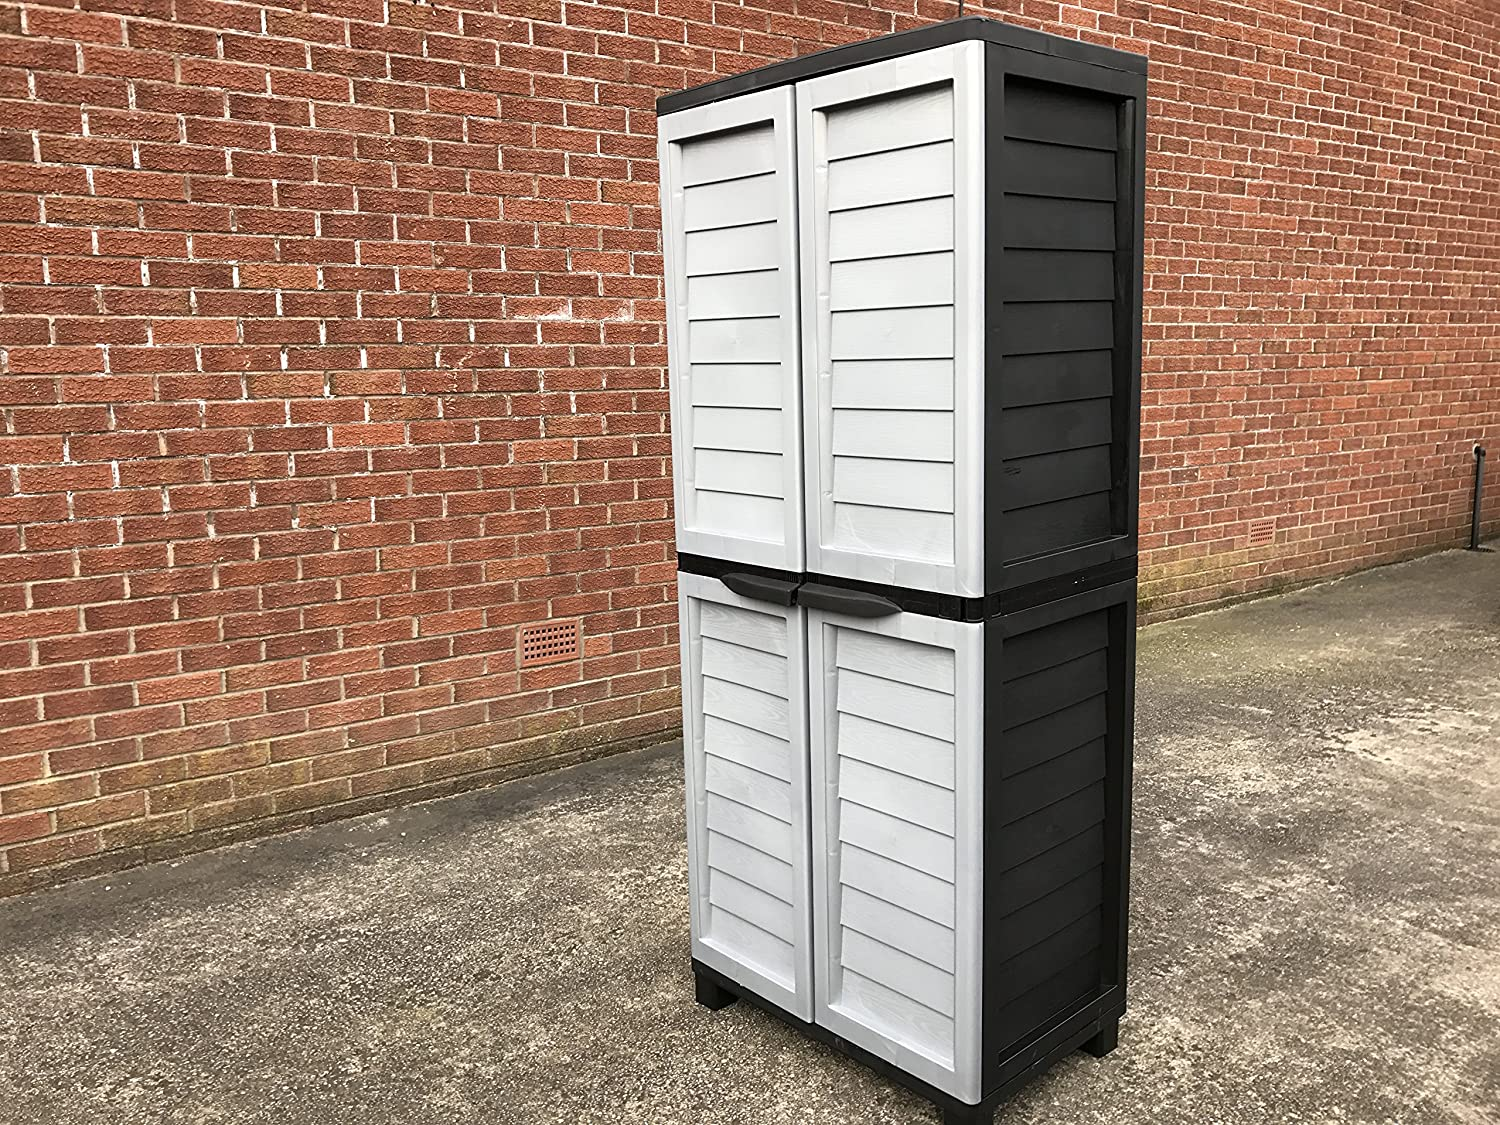 6ft Plastic Garden Storage Utility Shed Cabinet 4 Shelves Black and Silver Grey FAST STARPLAST